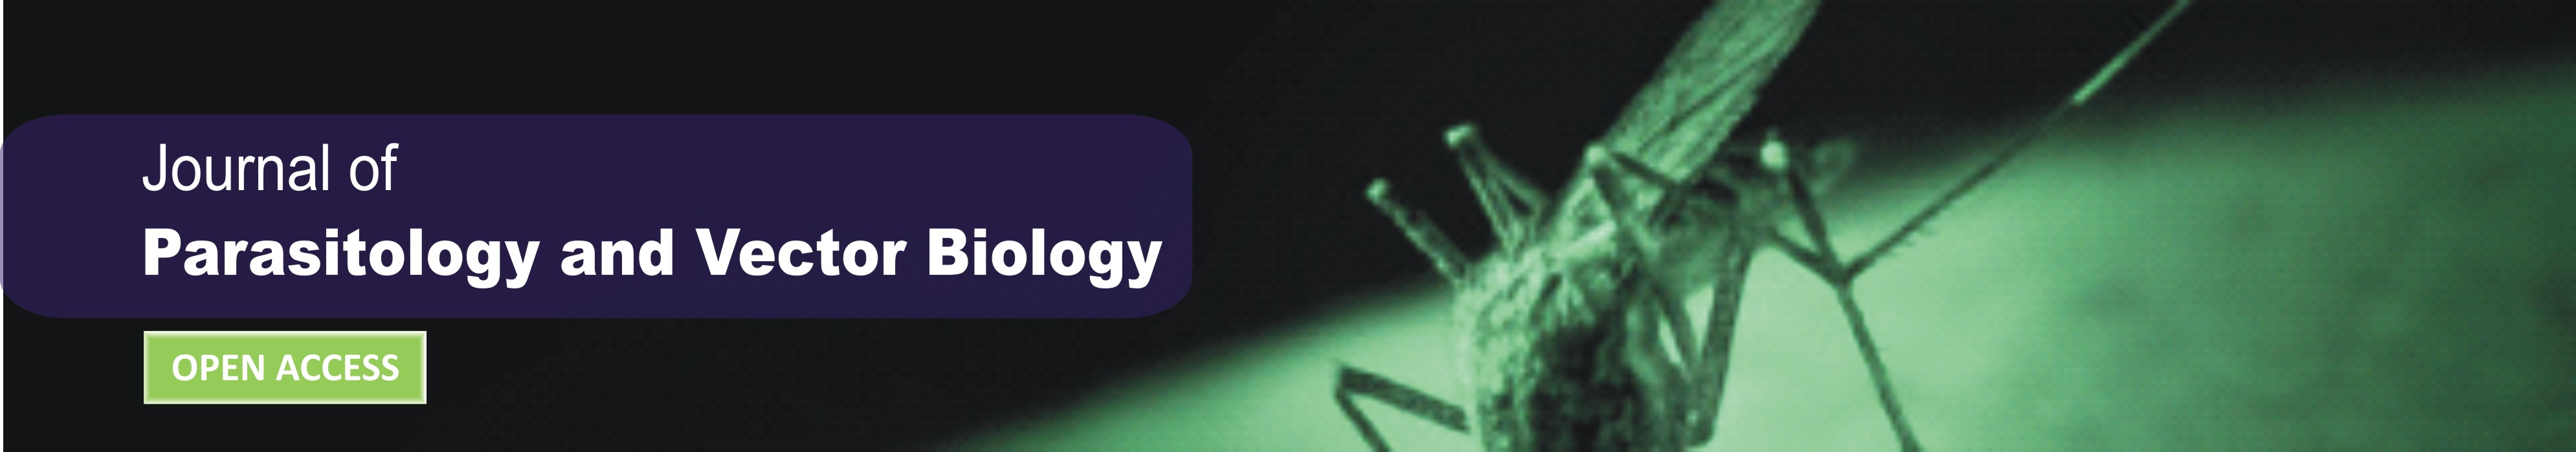 Journal of Parasitology and Vector Biology